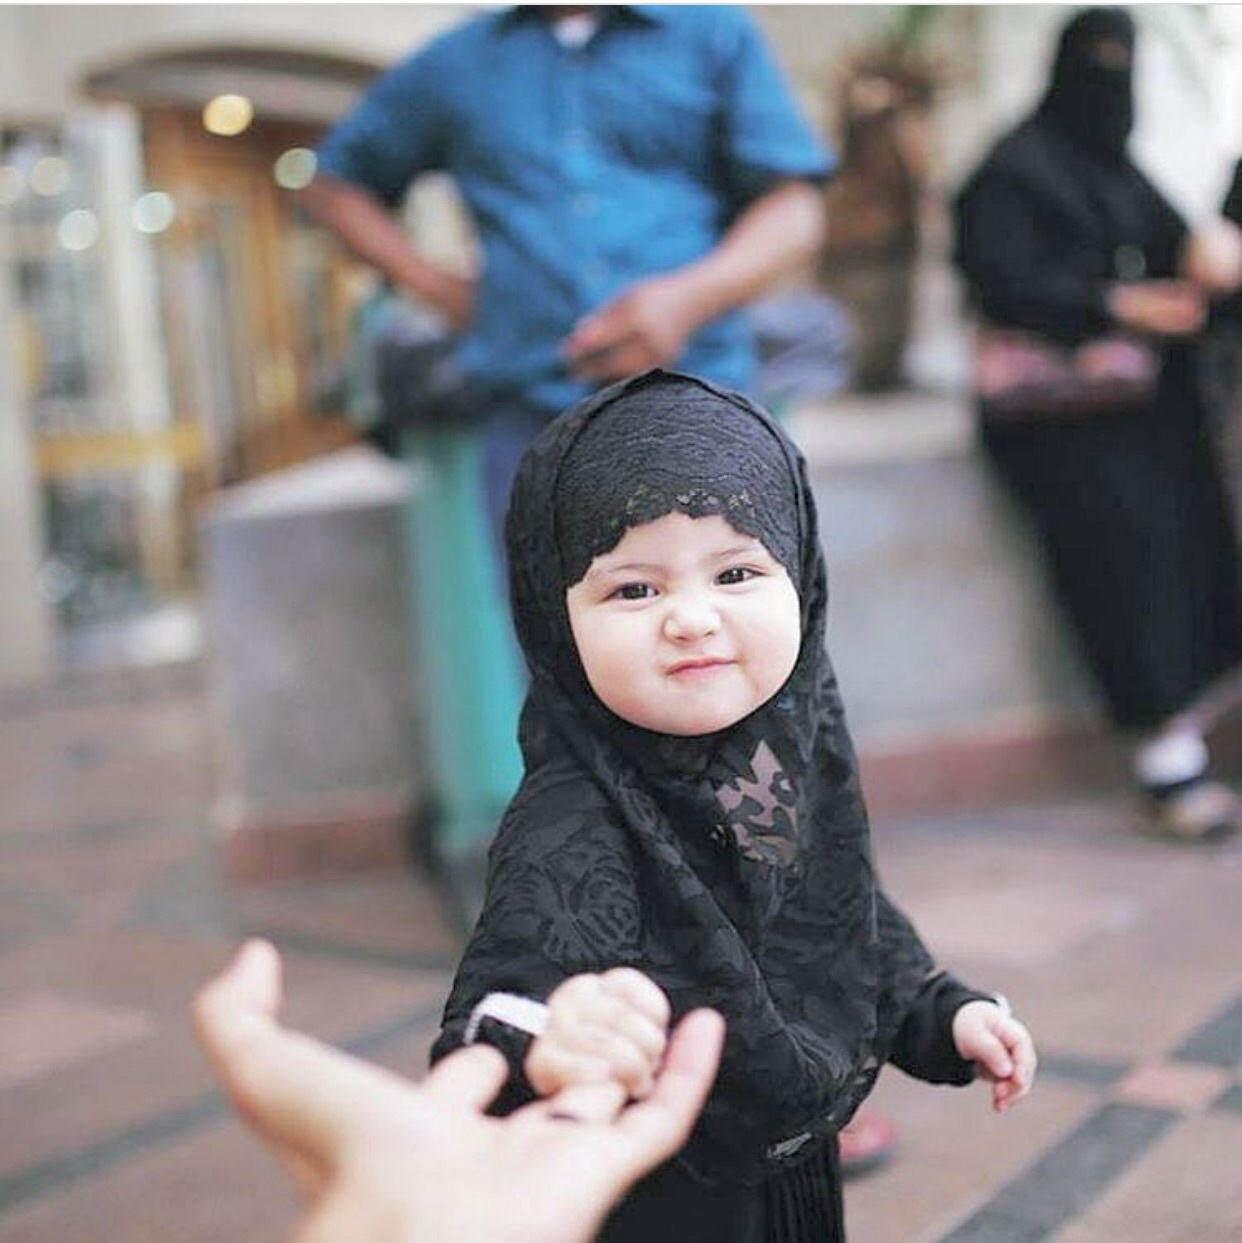 139 images about muslim cute babys on we heart it see more about baby cute and muslim